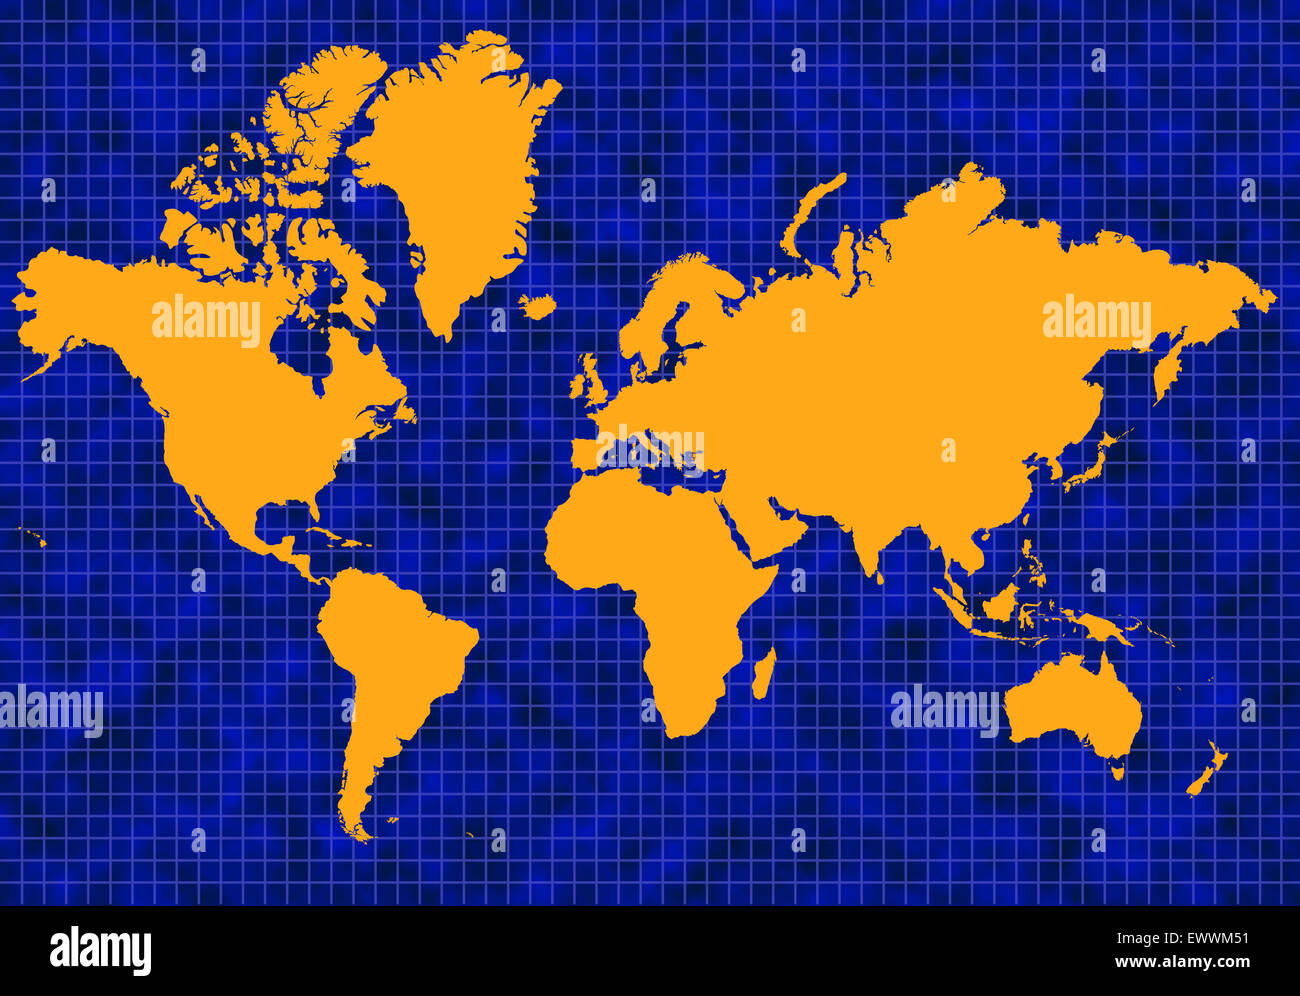 Blue global map with blue grid lines and yellow or gold continents - Stock Image